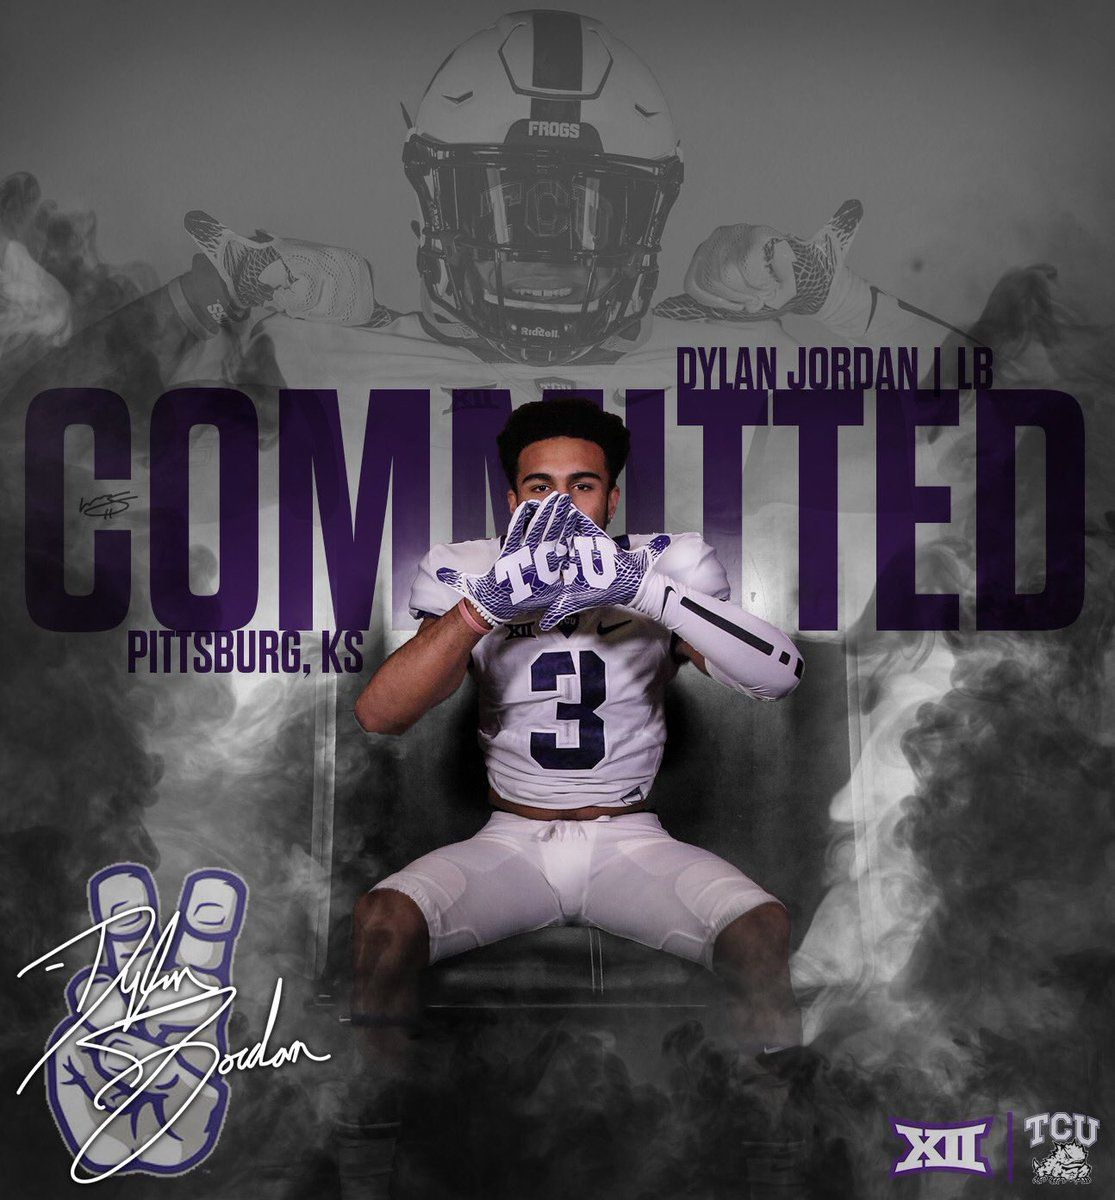 Pin By Skullsparks On 2019 Signing Class In 2020 Sports Graphic Design Tcu Pittsburg